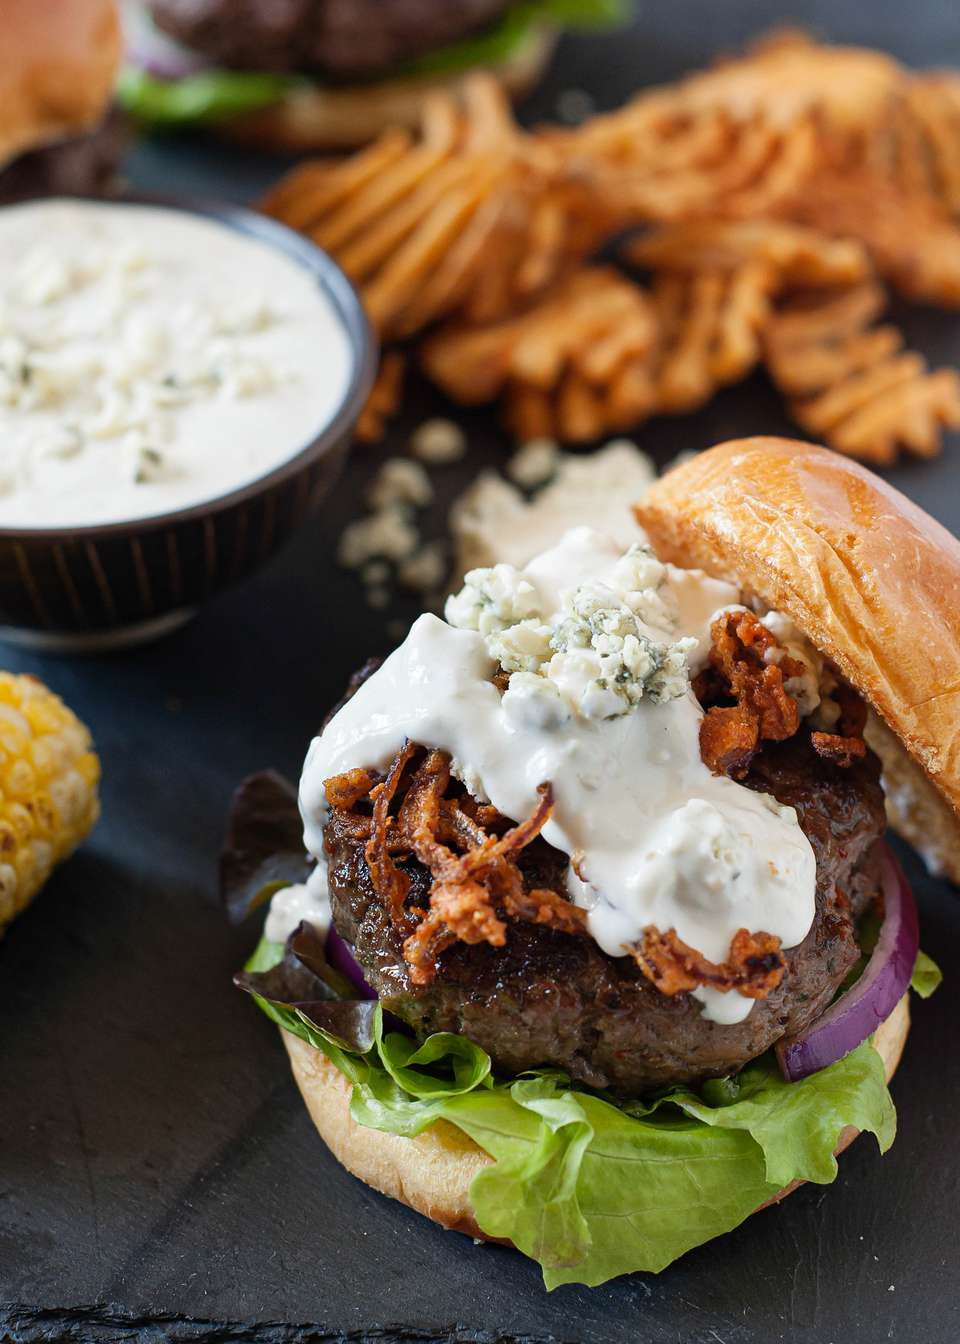 Best Burger Toppings - blue cheese sauce on a hamburger with fries in the background